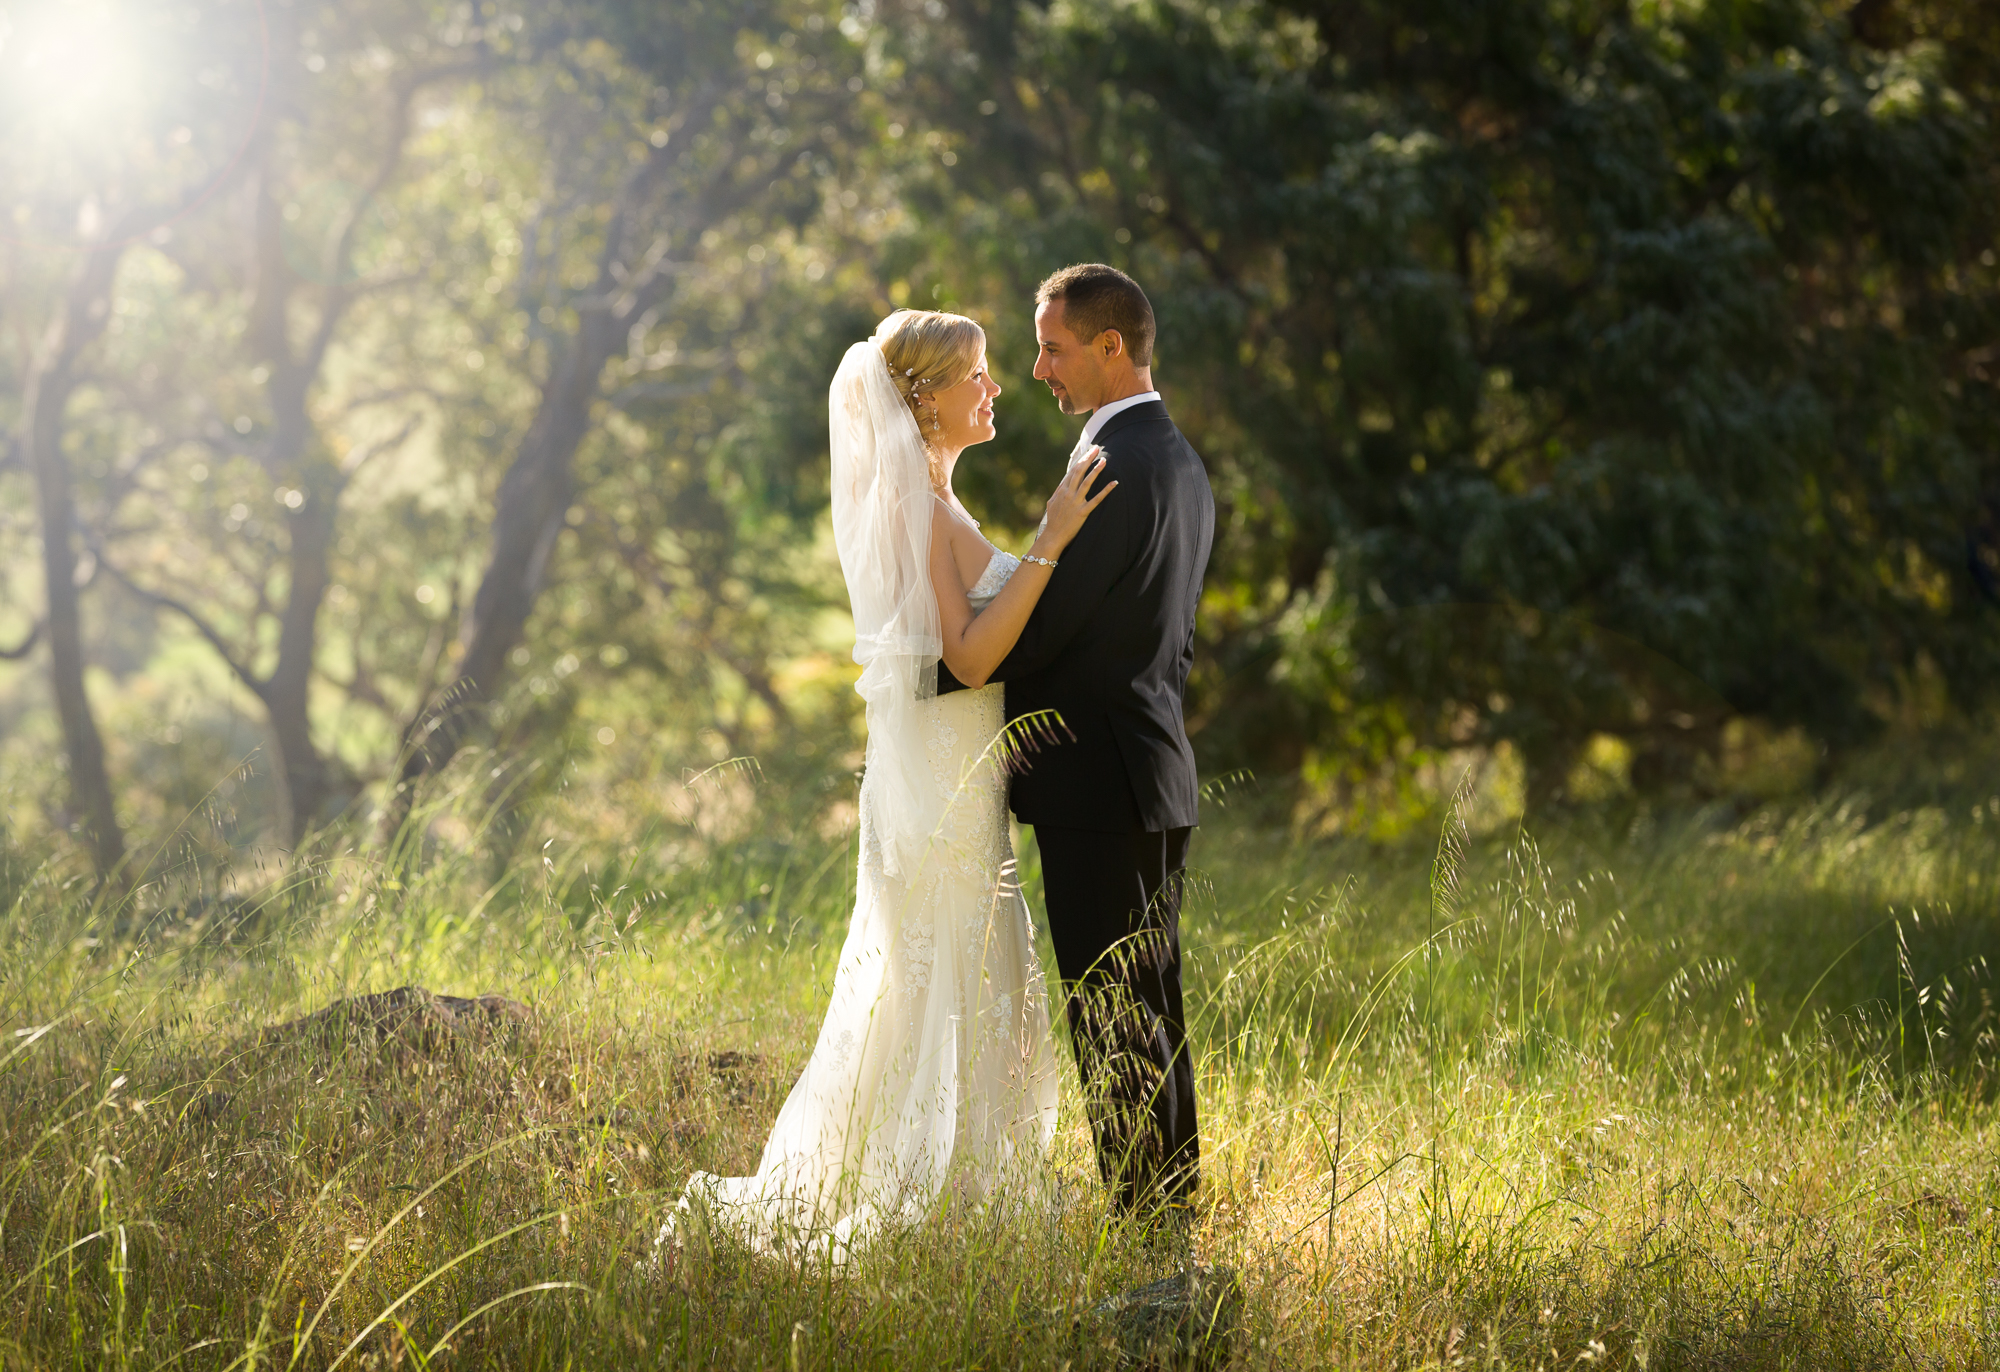 Premier Portrait and Wedding Photographer captured here a lovely bride and groom portrait down south in Yallingup, Western Australia